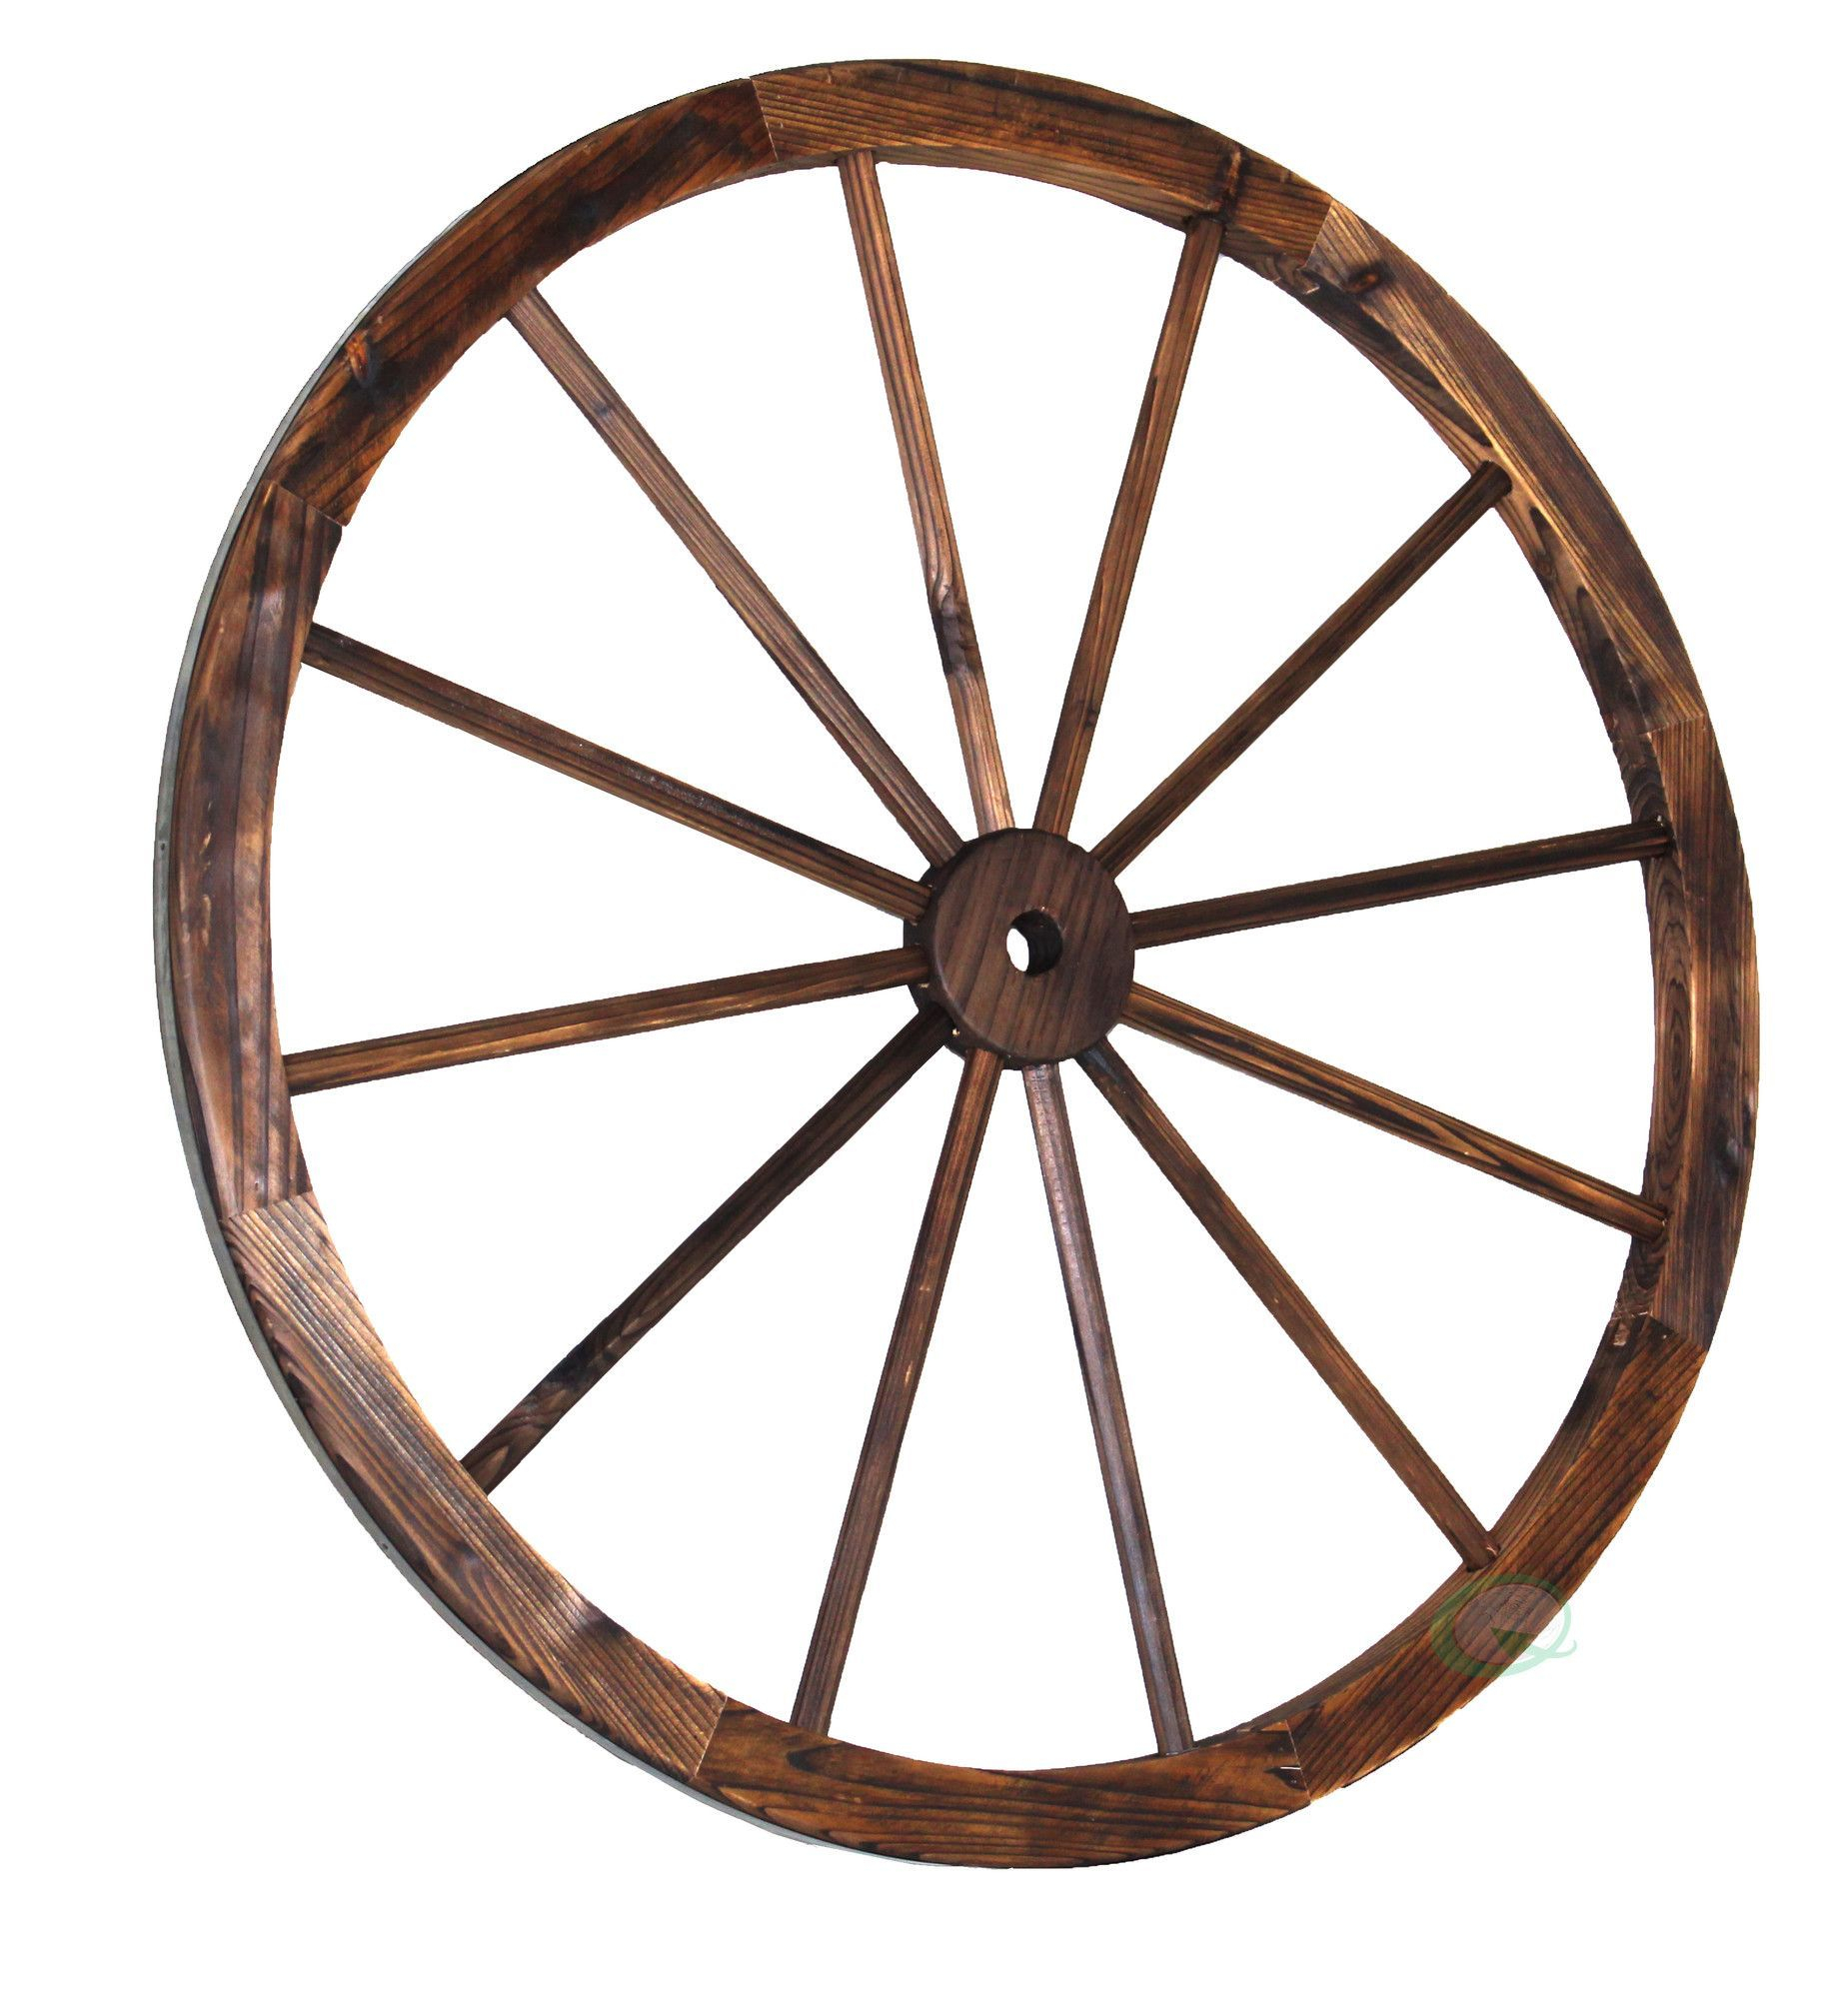 Wagon Wheel Decor, Wall Pertaining To Millanocket Metal Wheel Photo Holder Wall Decor (View 15 of 20)